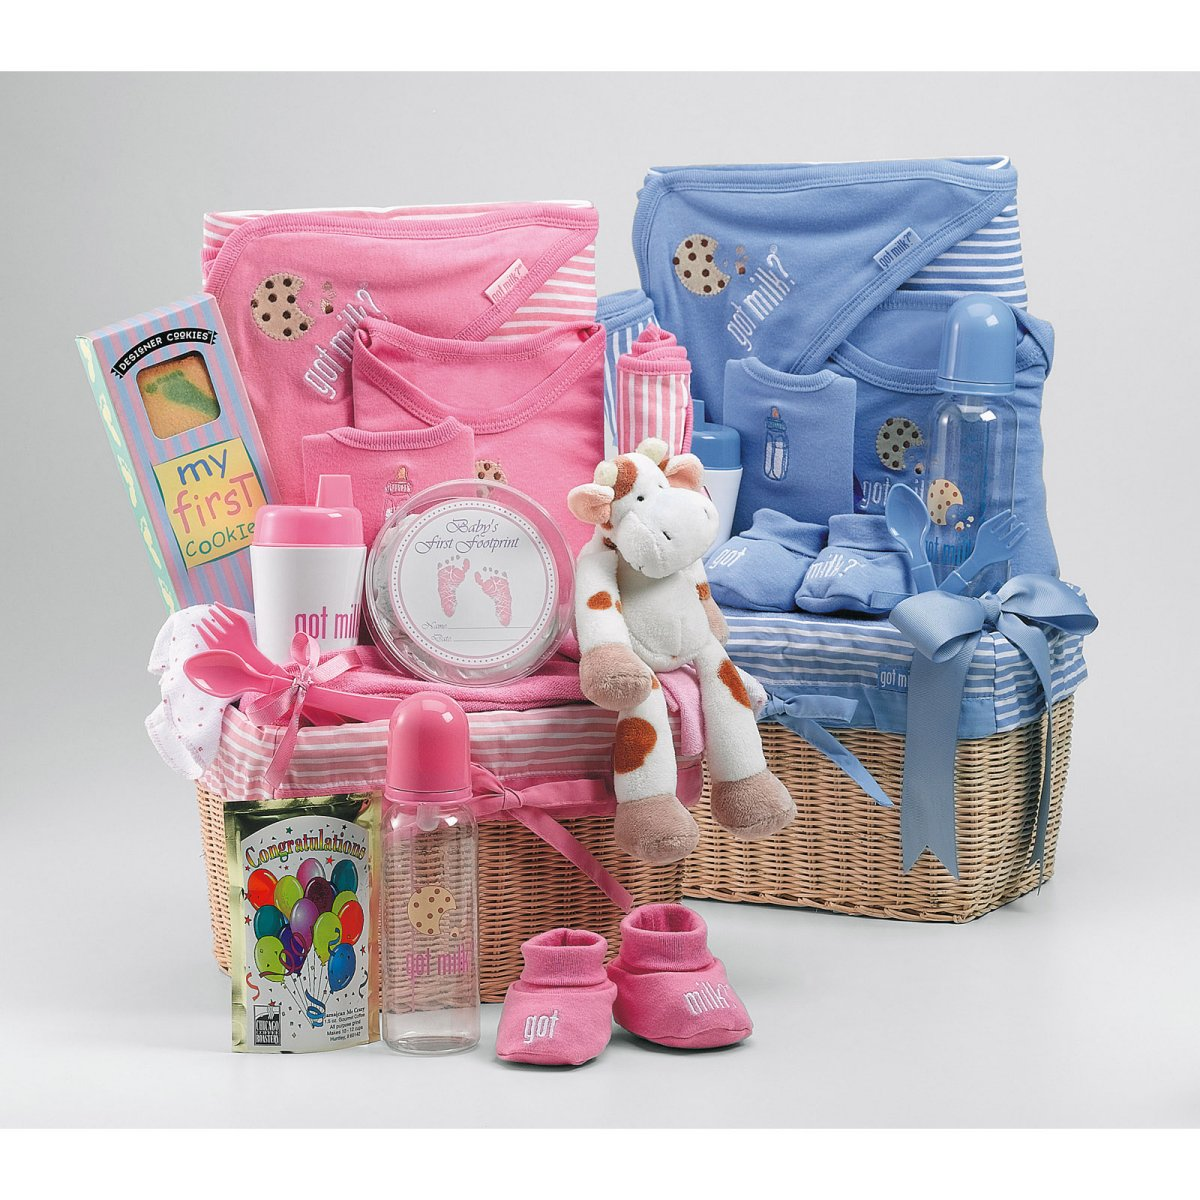 newborn baby gifts – Giftcart Blog